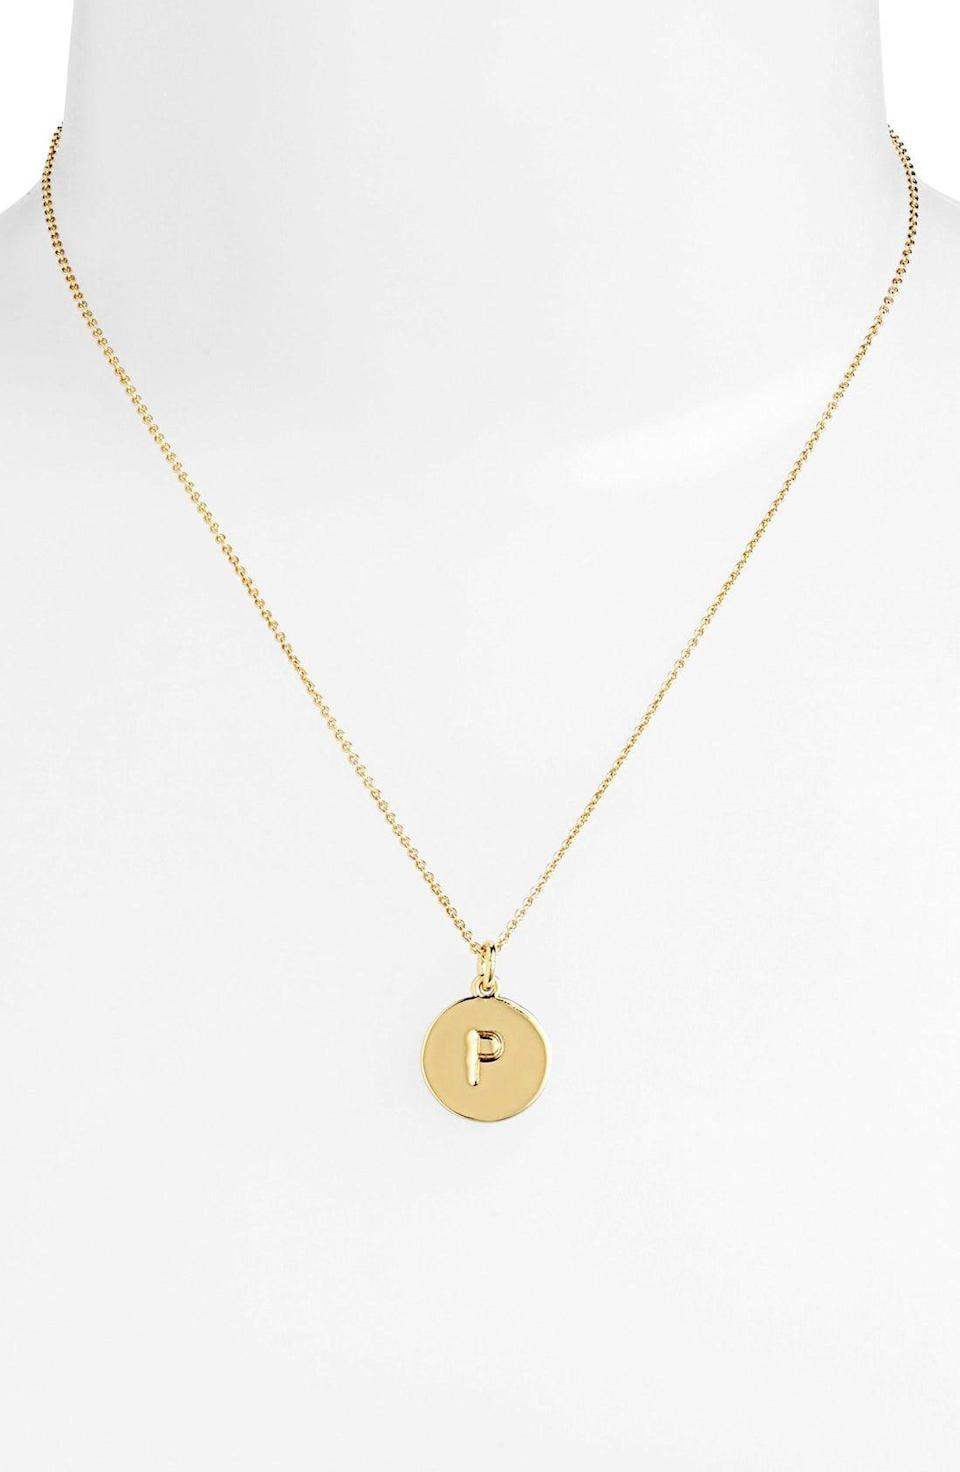 """<p><strong>KATE SPADE NEW YORK</strong></p><p>nordstrom.com</p><p><strong>$40.60</strong></p><p><a href=""""https://go.redirectingat.com?id=74968X1596630&url=https%3A%2F%2Fwww.nordstrom.com%2Fs%2Fkate-spade-new-york-one-in-a-million-initial-pendant-necklace%2F3628637&sref=https%3A%2F%2Fwww.thepioneerwoman.com%2Fholidays-celebrations%2Fgifts%2Fg32303677%2Fgifts-for-grandparents%2F"""" rel=""""nofollow noopener"""" target=""""_blank"""" data-ylk=""""slk:Shop Now"""" class=""""link rapid-noclick-resp"""">Shop Now</a></p><p>No matter her taste, she's bound to love this pretty necklace. A simple initial keeps it personal. </p>"""